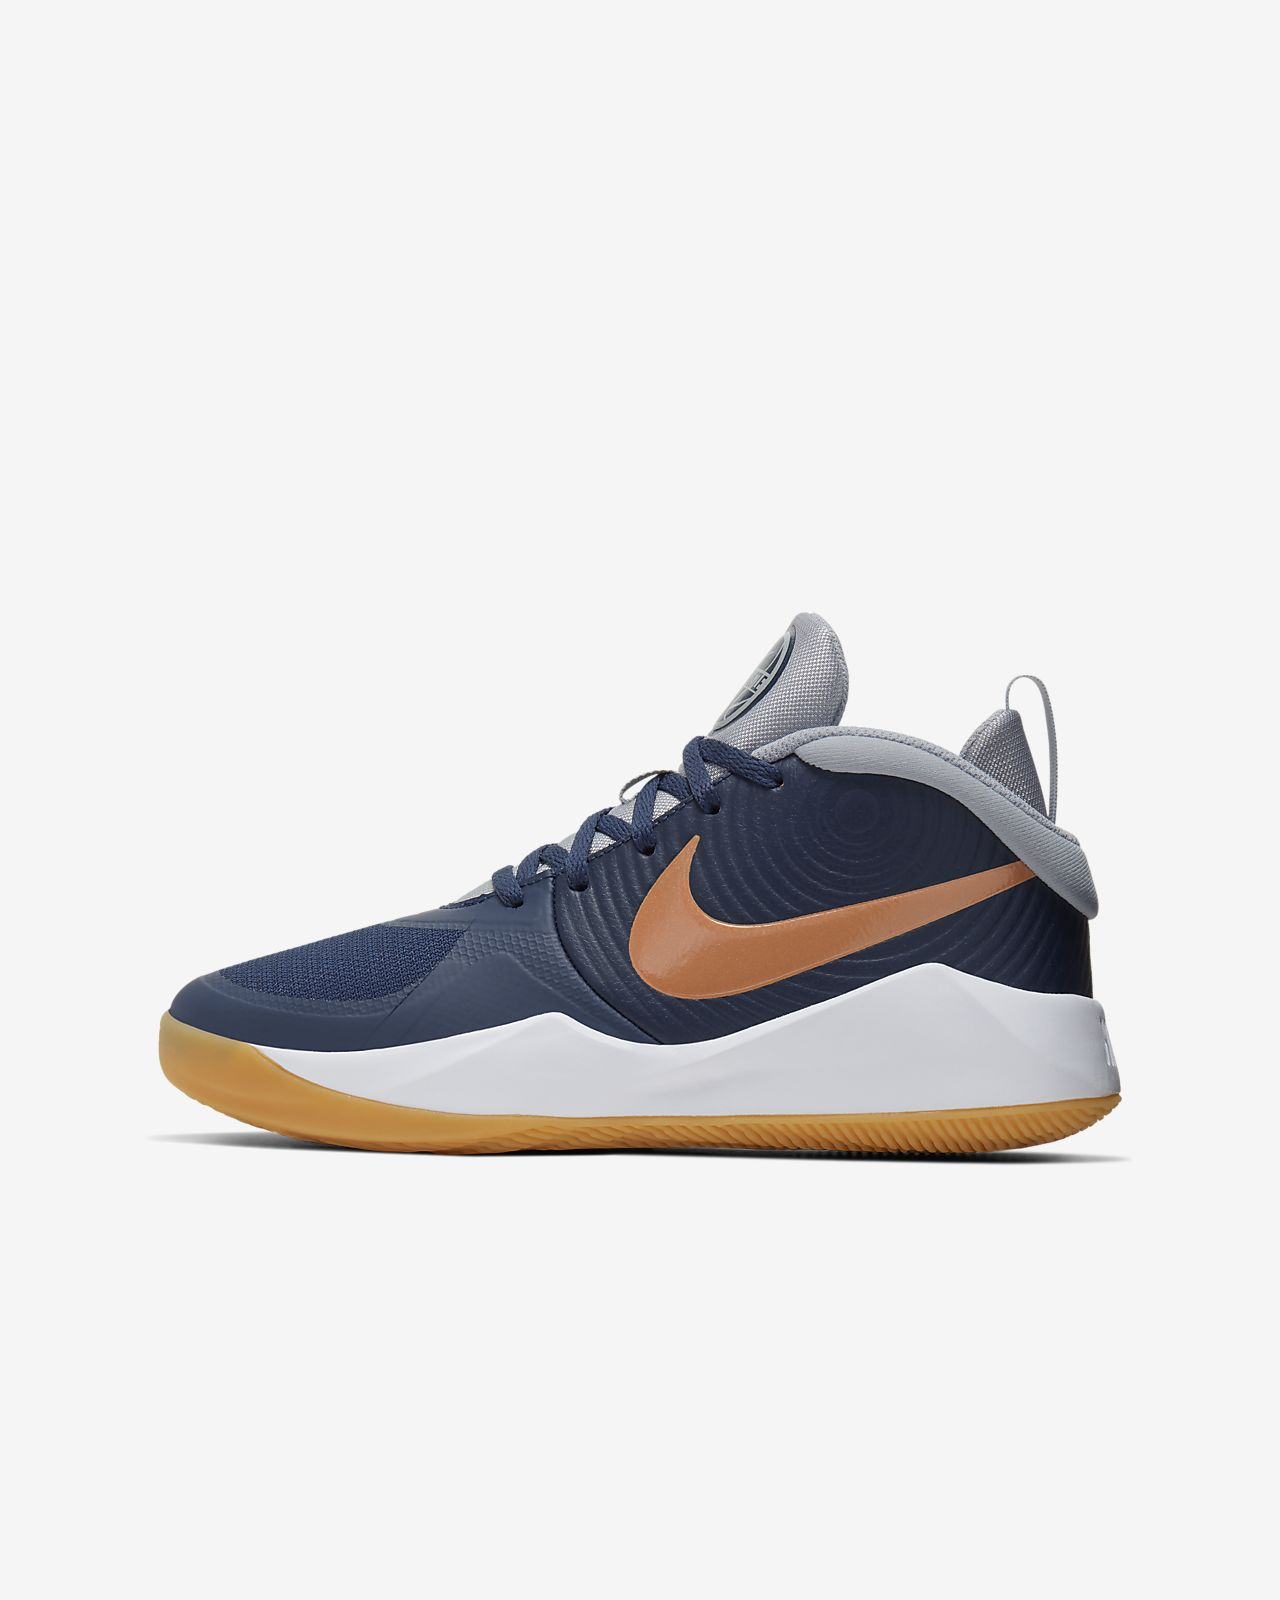 Nike Team Hustle D 9 Older Kids' Basketball Shoe